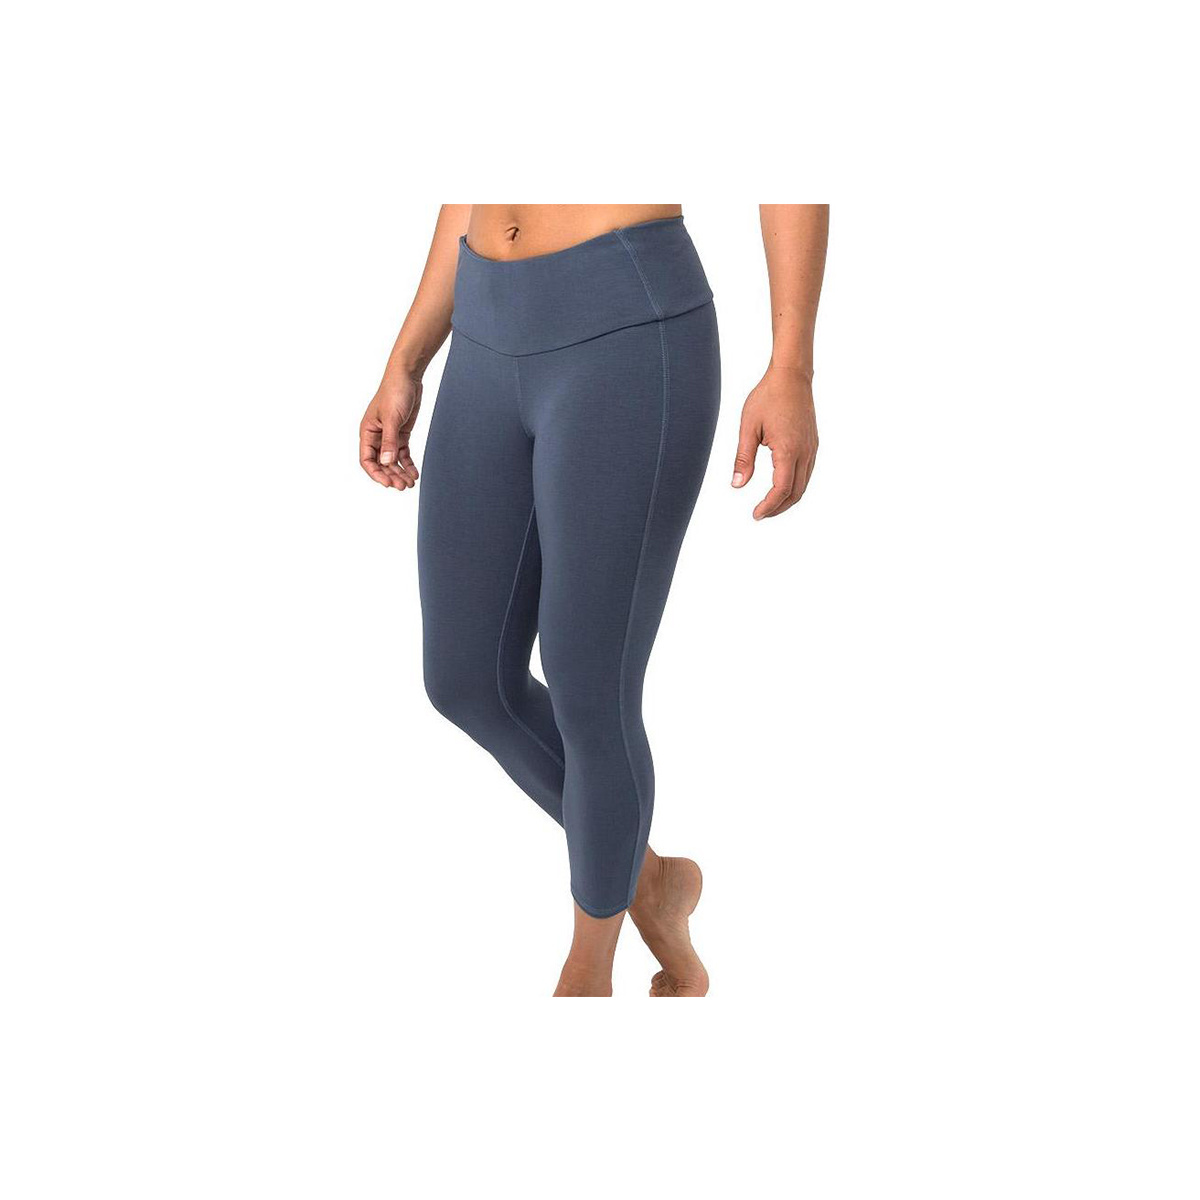 Free Fly Apparel Women's Bamboo Cropped Tights